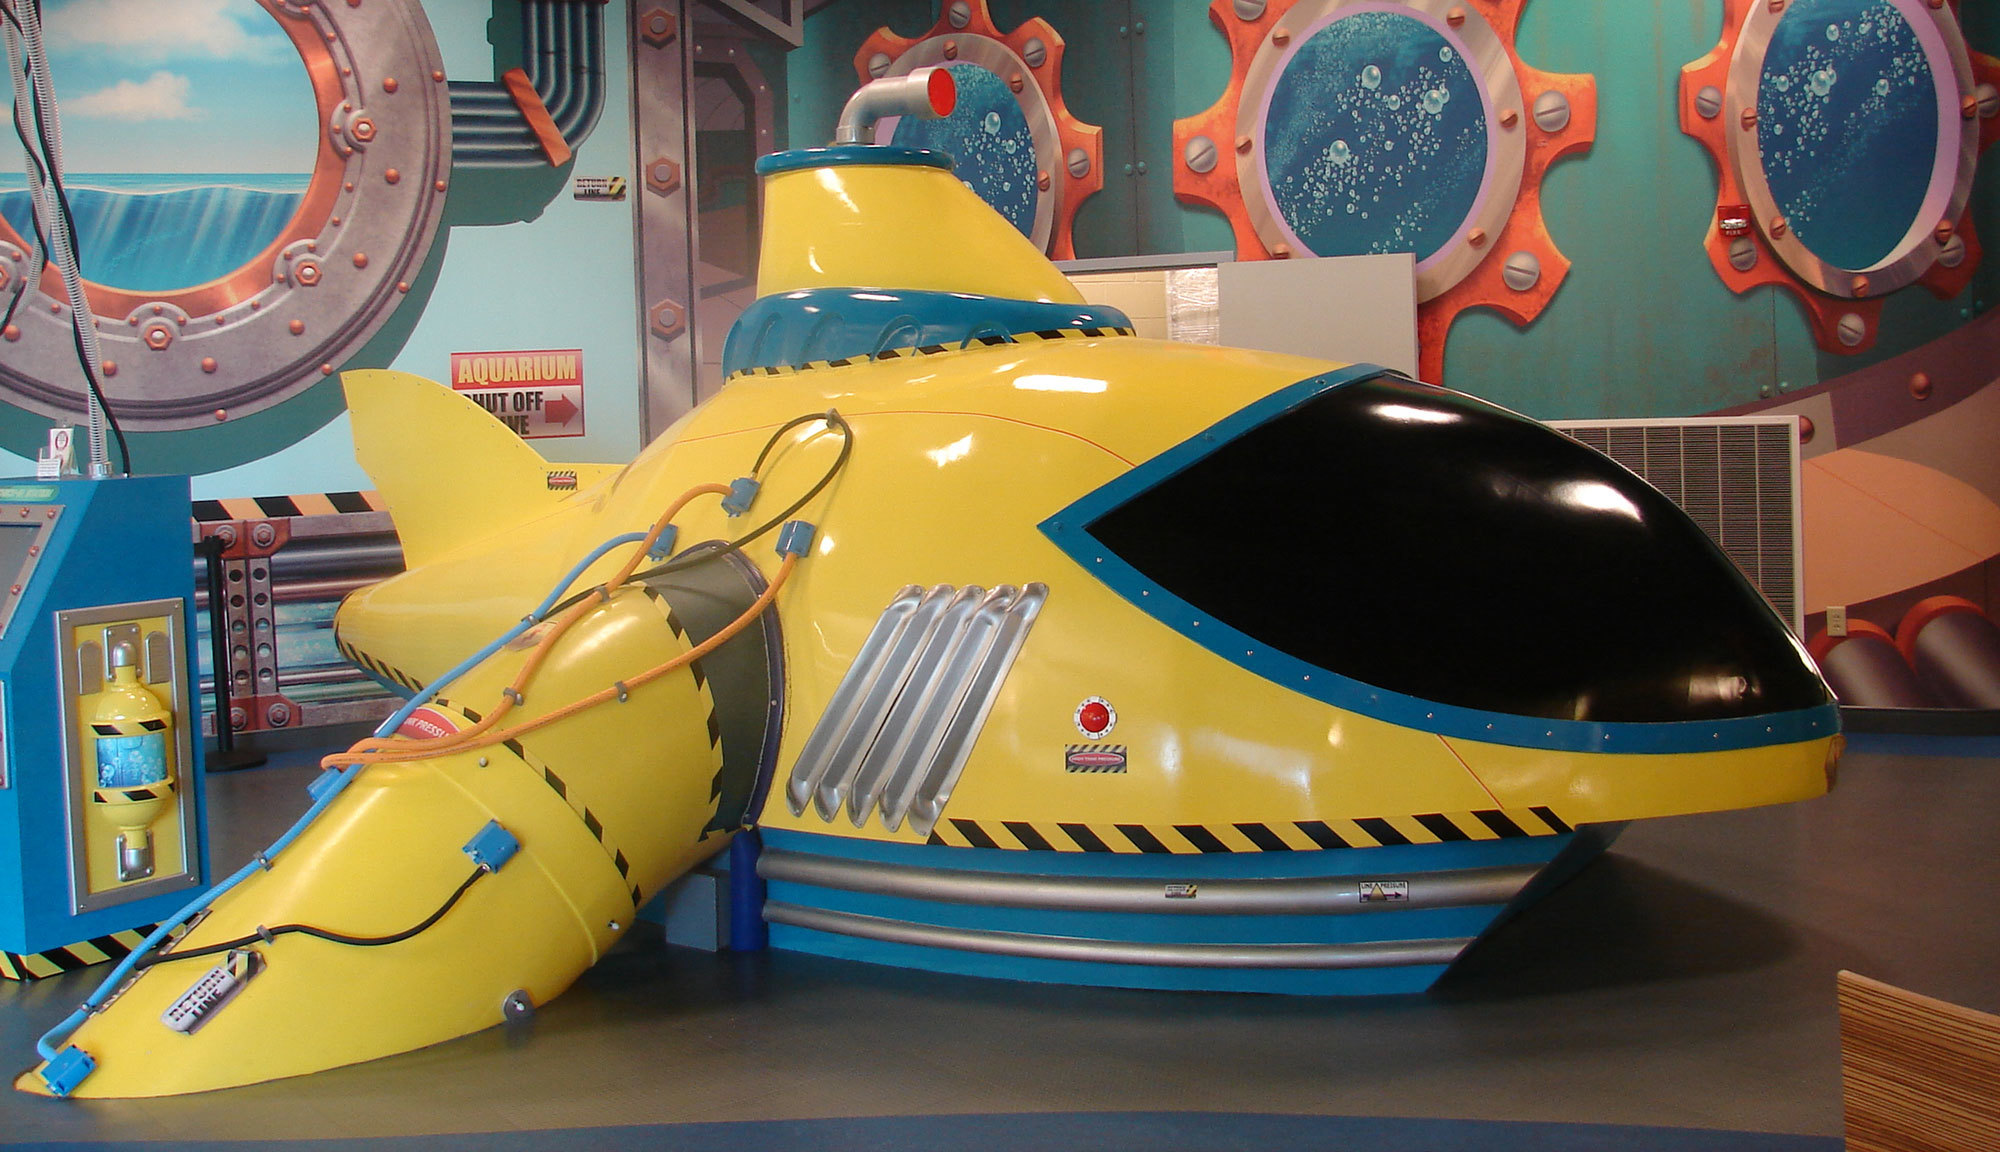 3D Sculpted Yellow Submarine in Undersea Themed Space